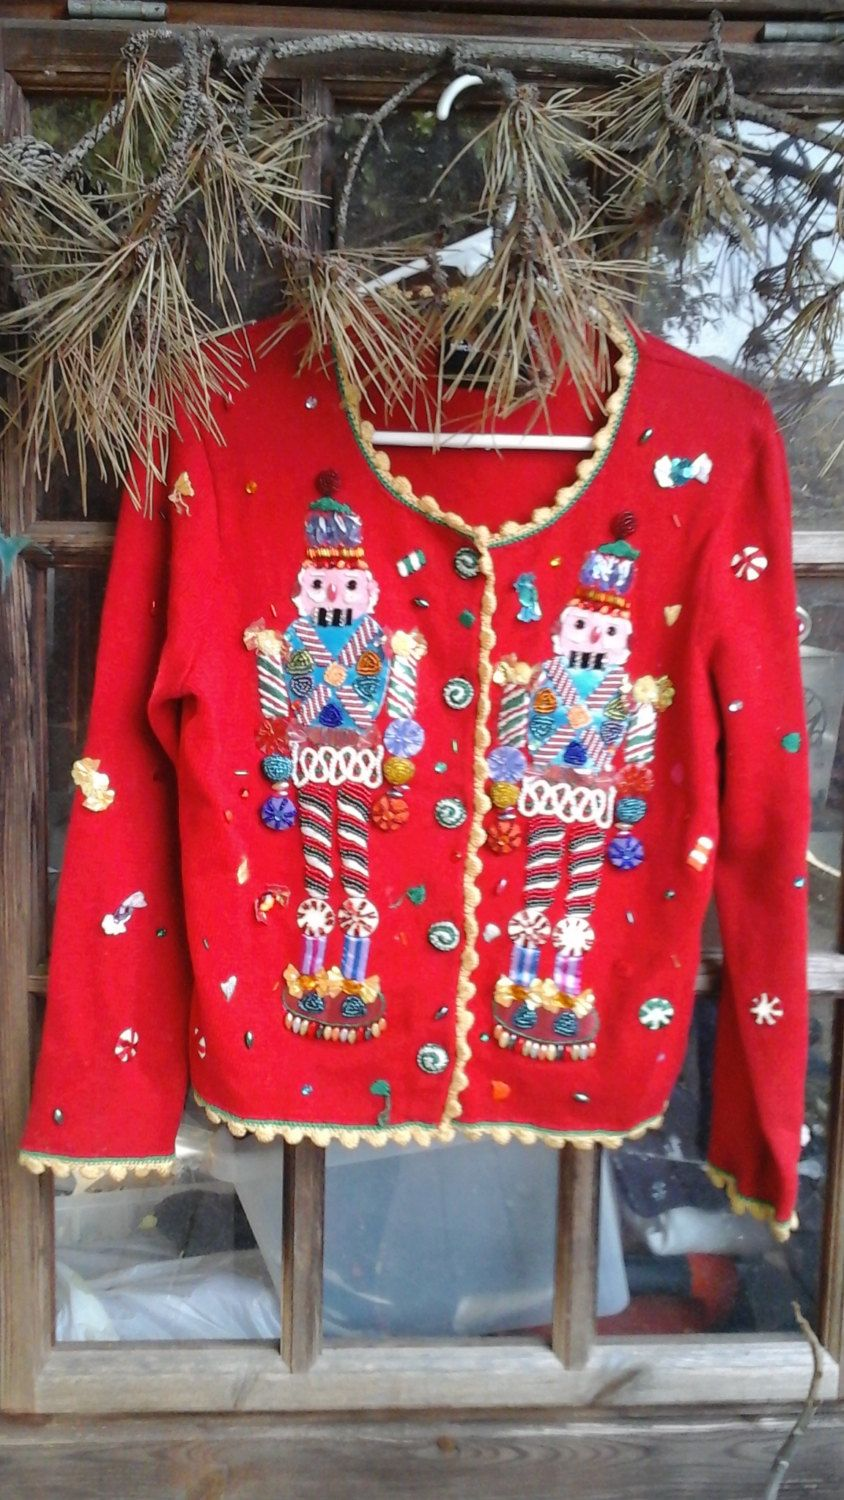 Nutcracker vintage ugly Christmas sweater by